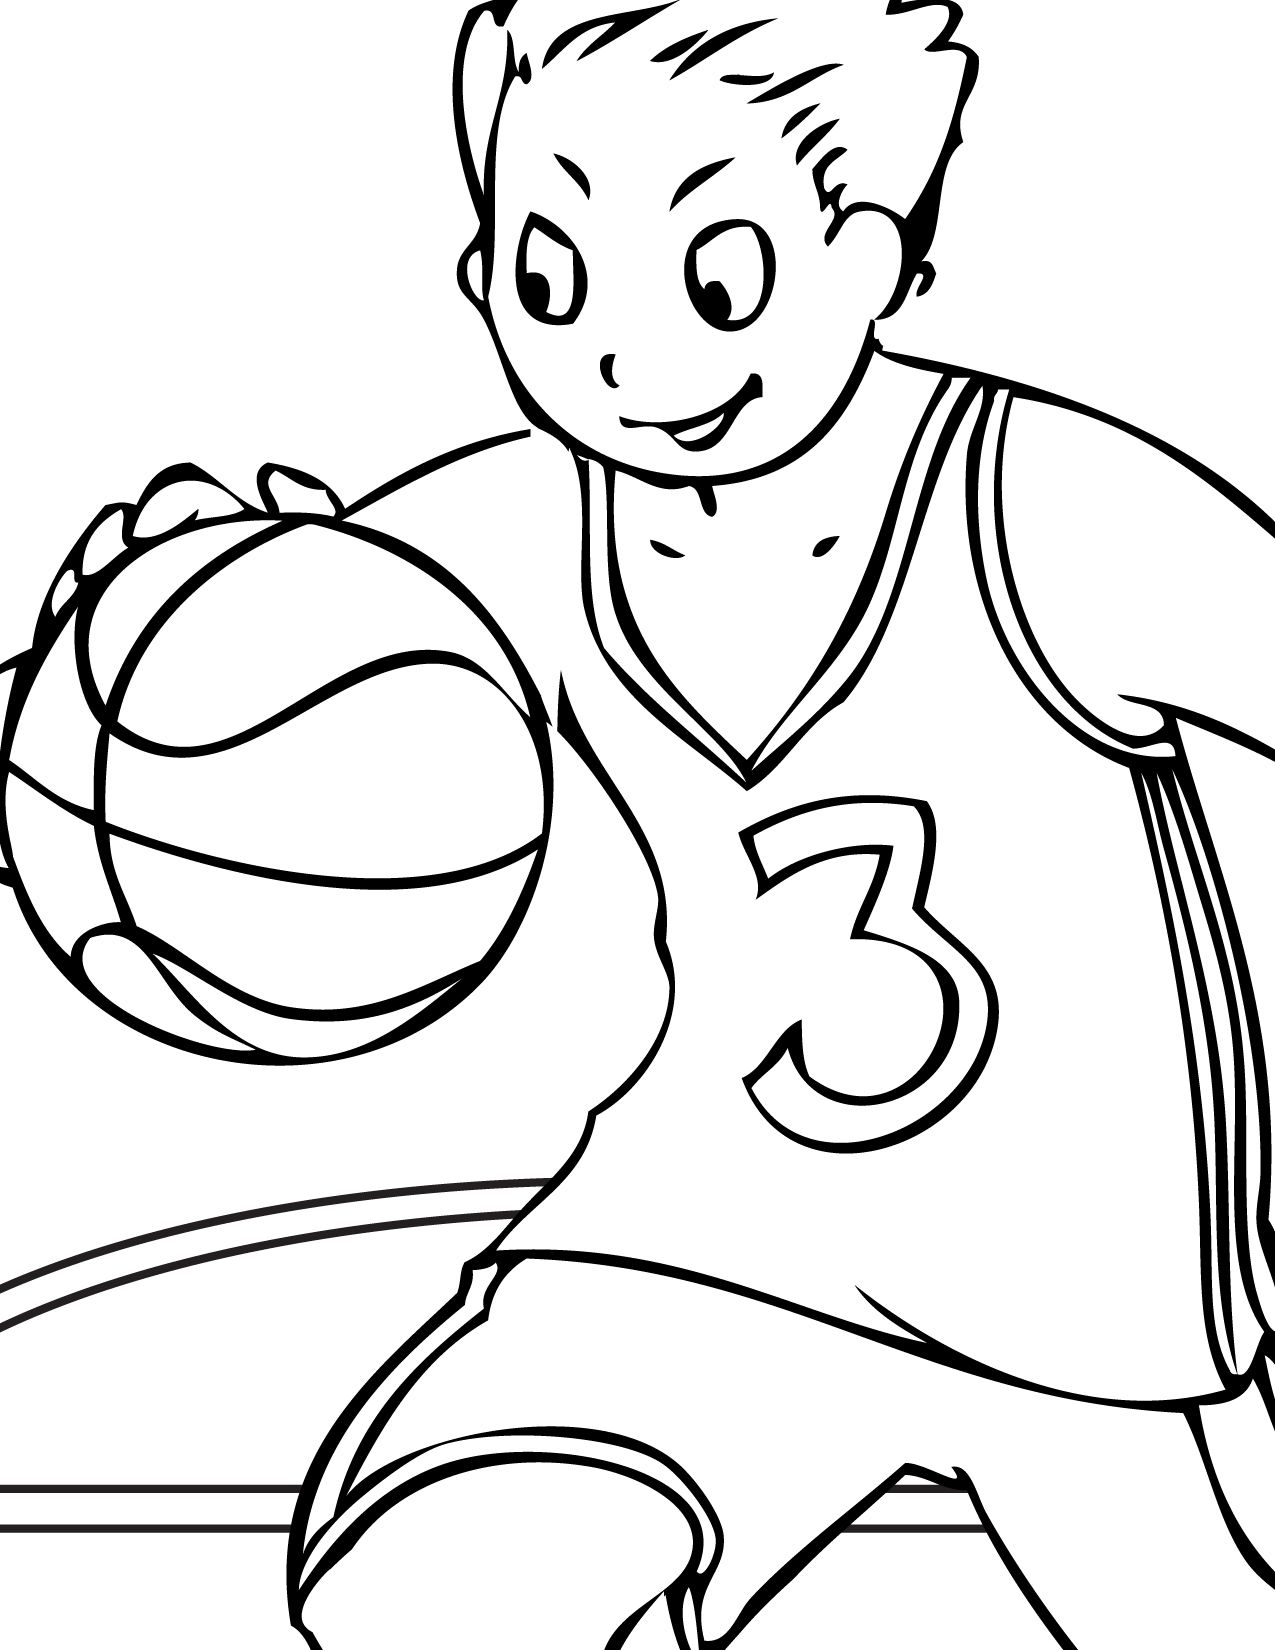 Basketball Coloring Pages8 Sports Coloring Pages Free Coloring Pages Coloring Books